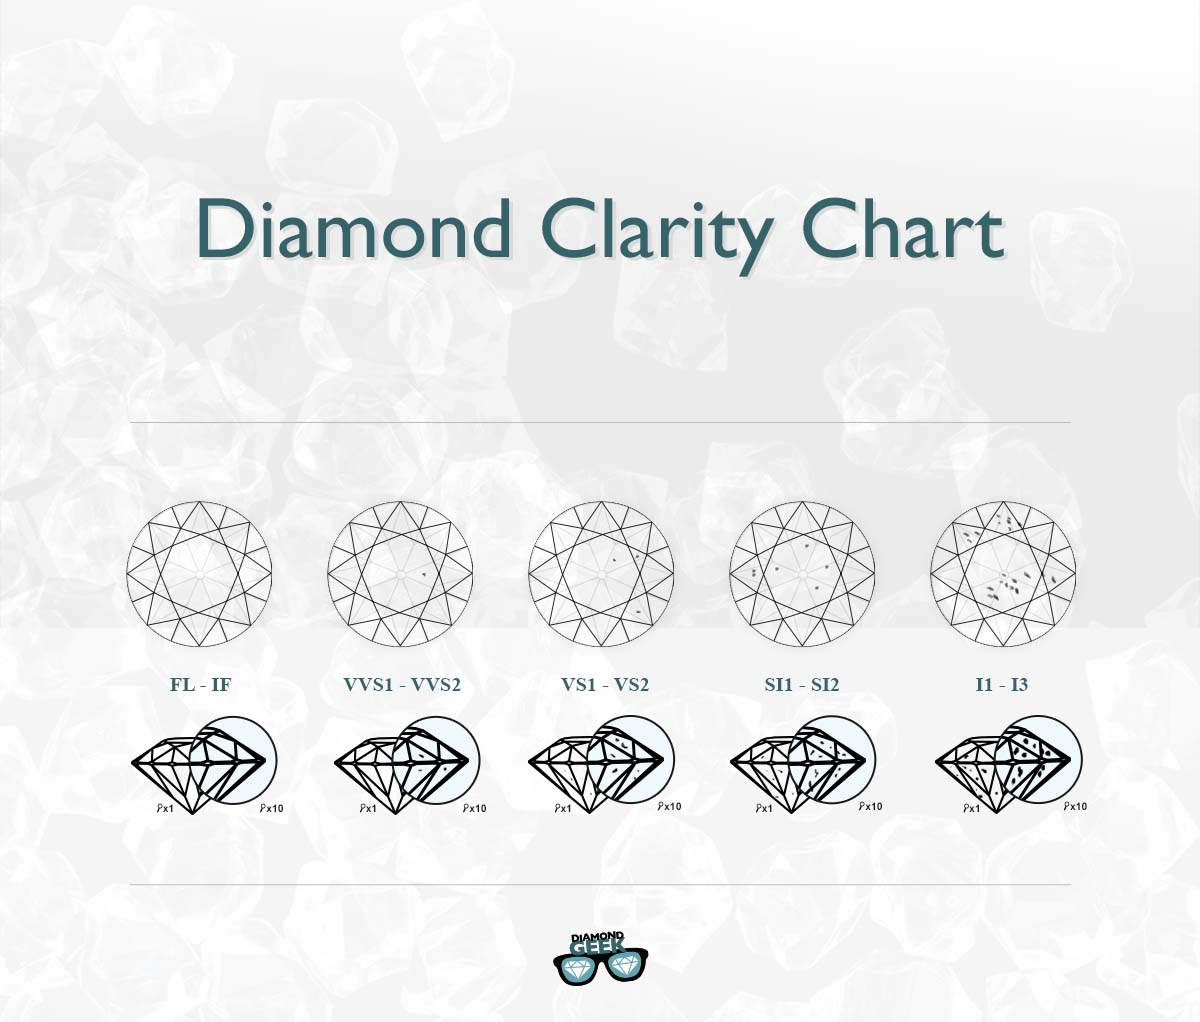 idai diamond clarity chart baskan size co